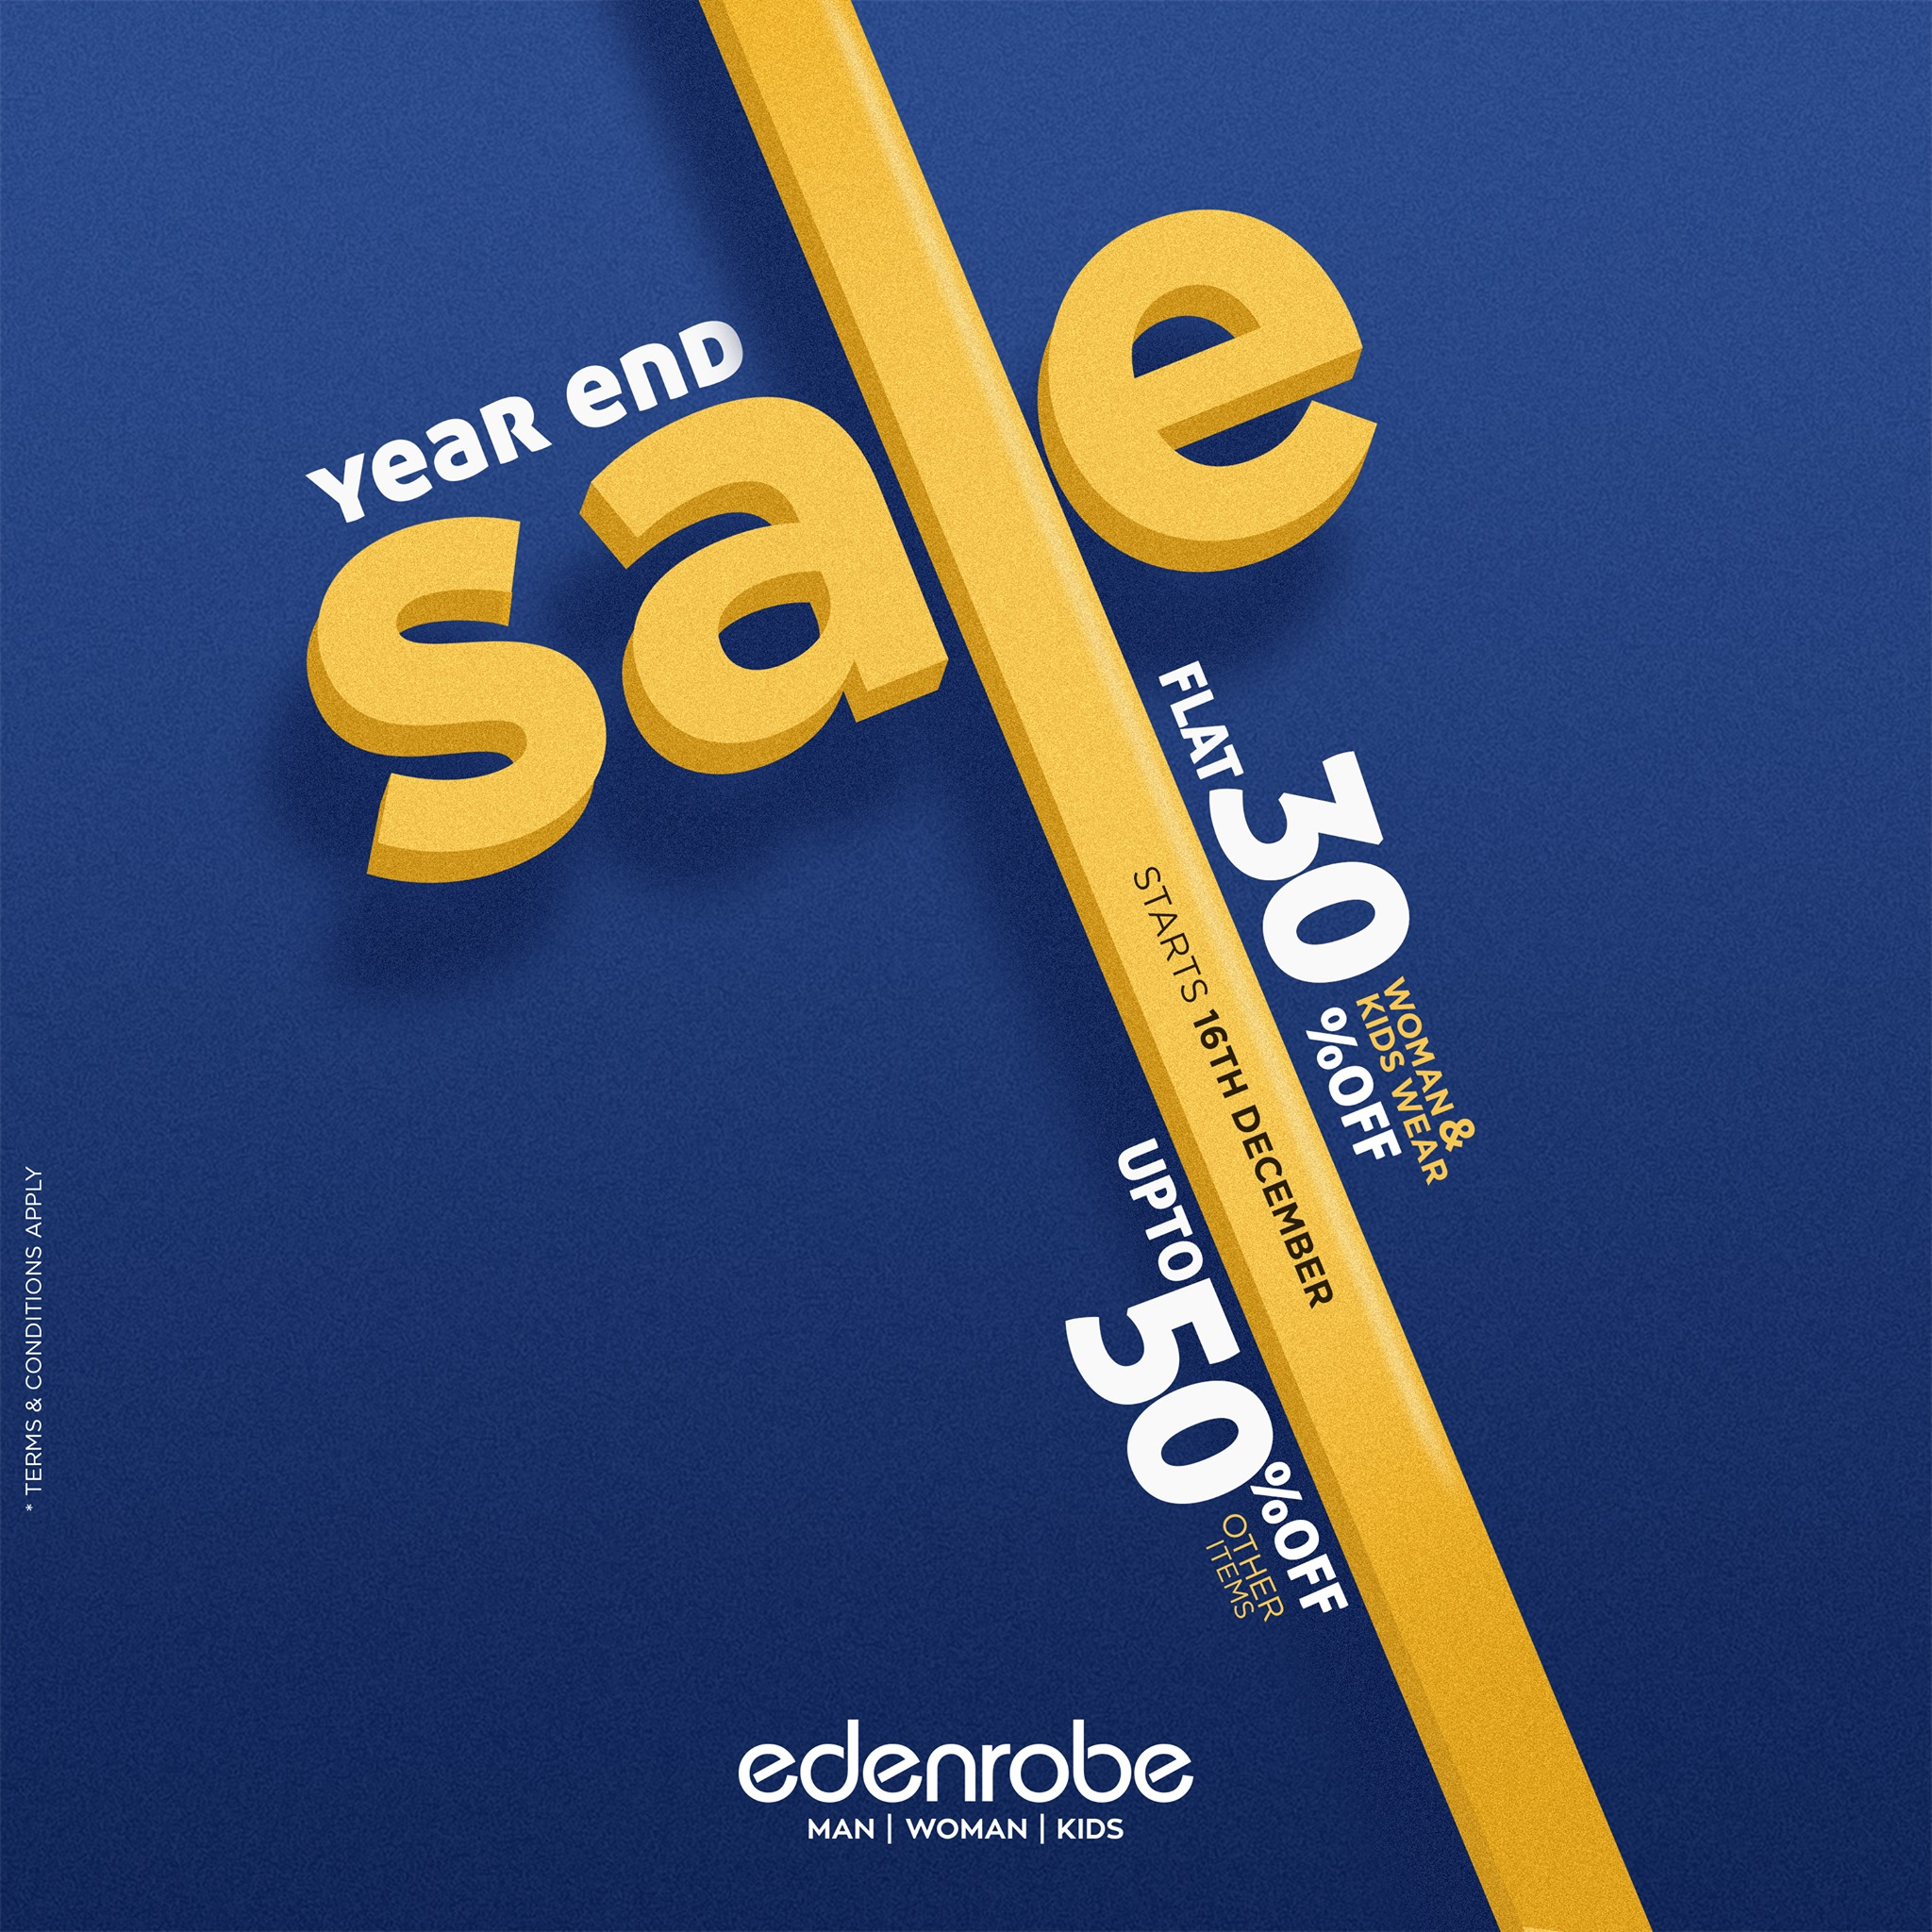 Edenrobe - Year End Sale